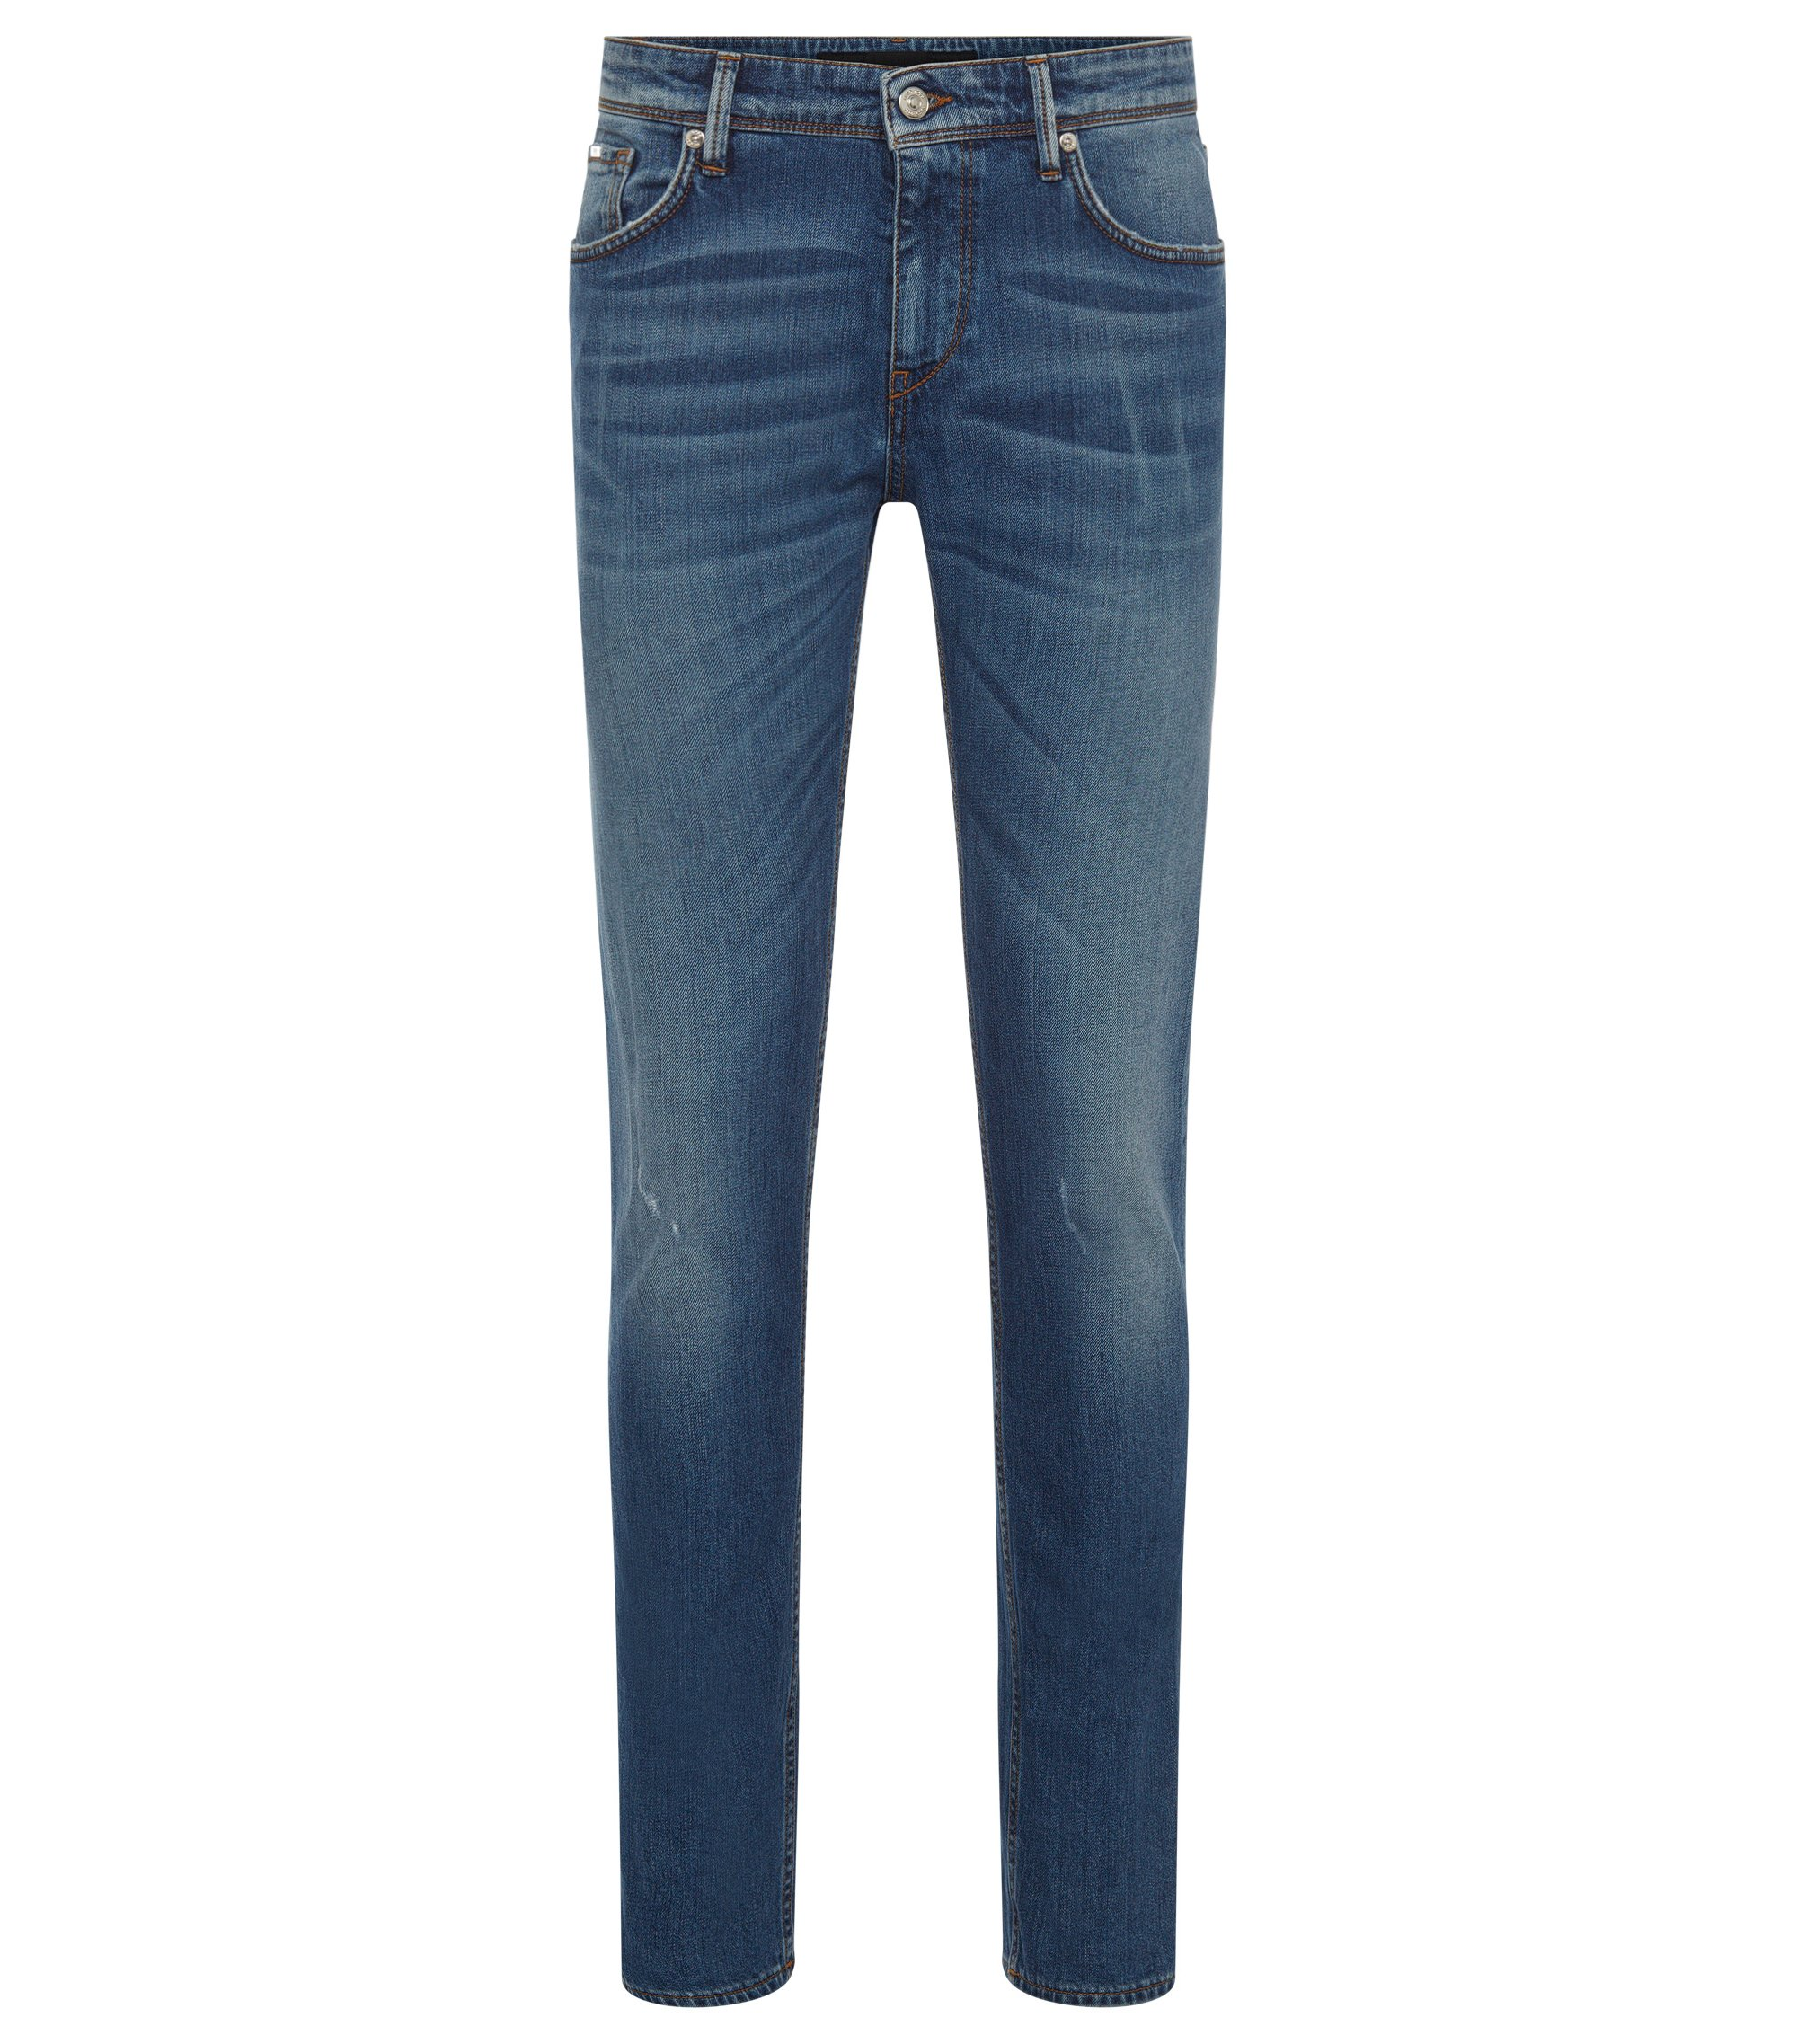 Jeans Slim Fit en denim stretch délavé, Bleu